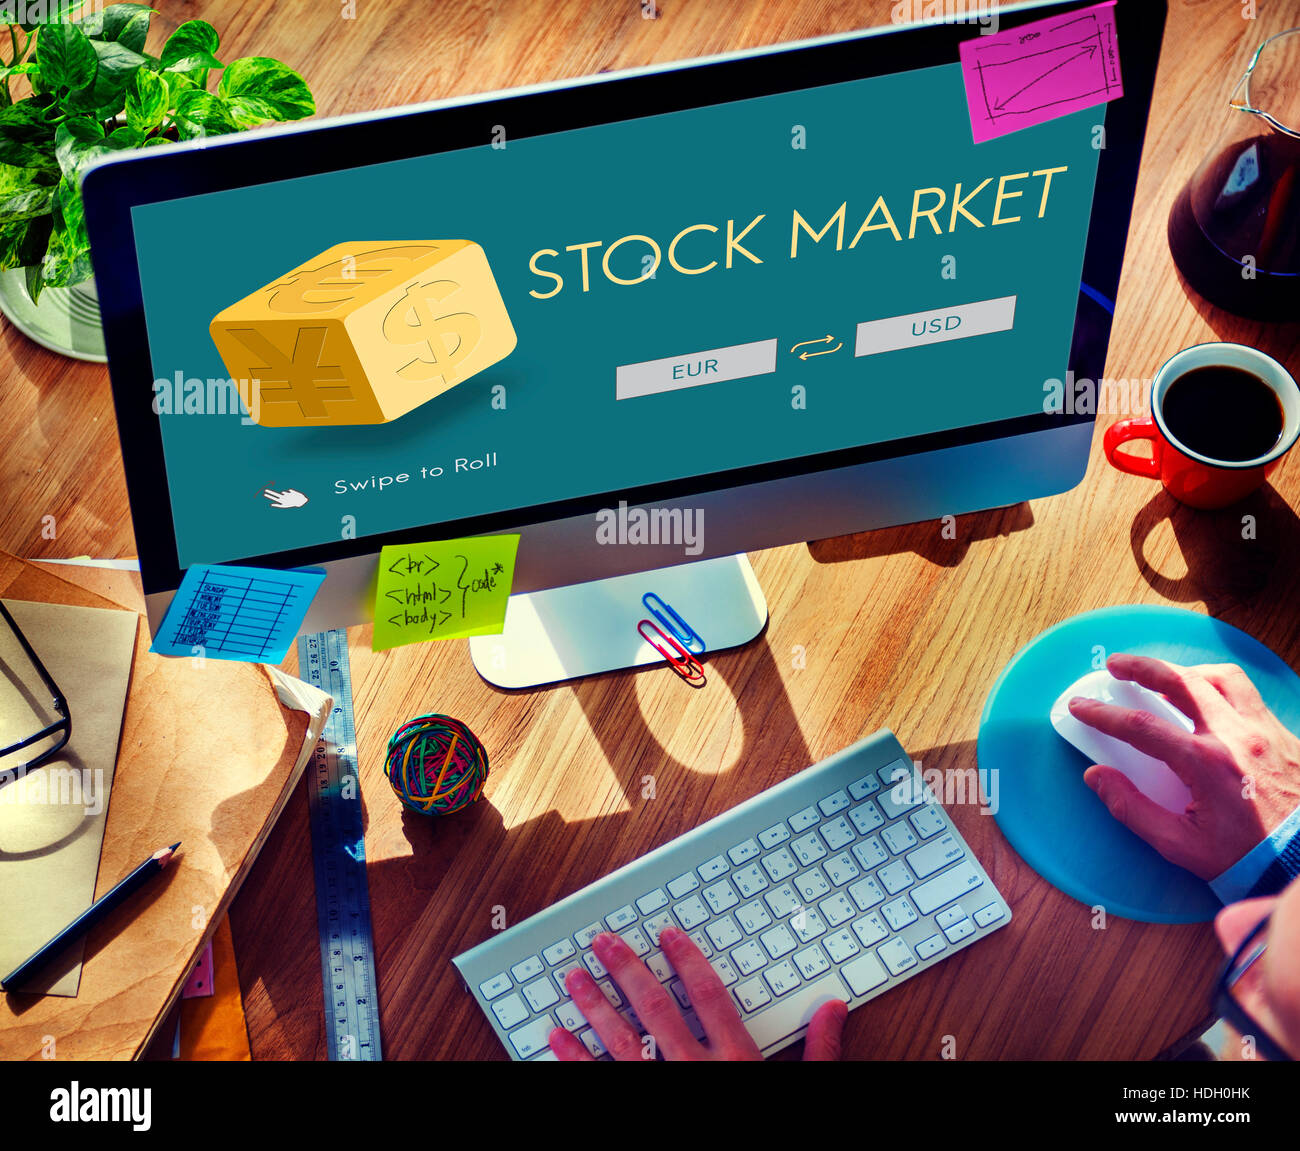 Currency Exchange Stock Market Financial Graphic Concept Stock Photo